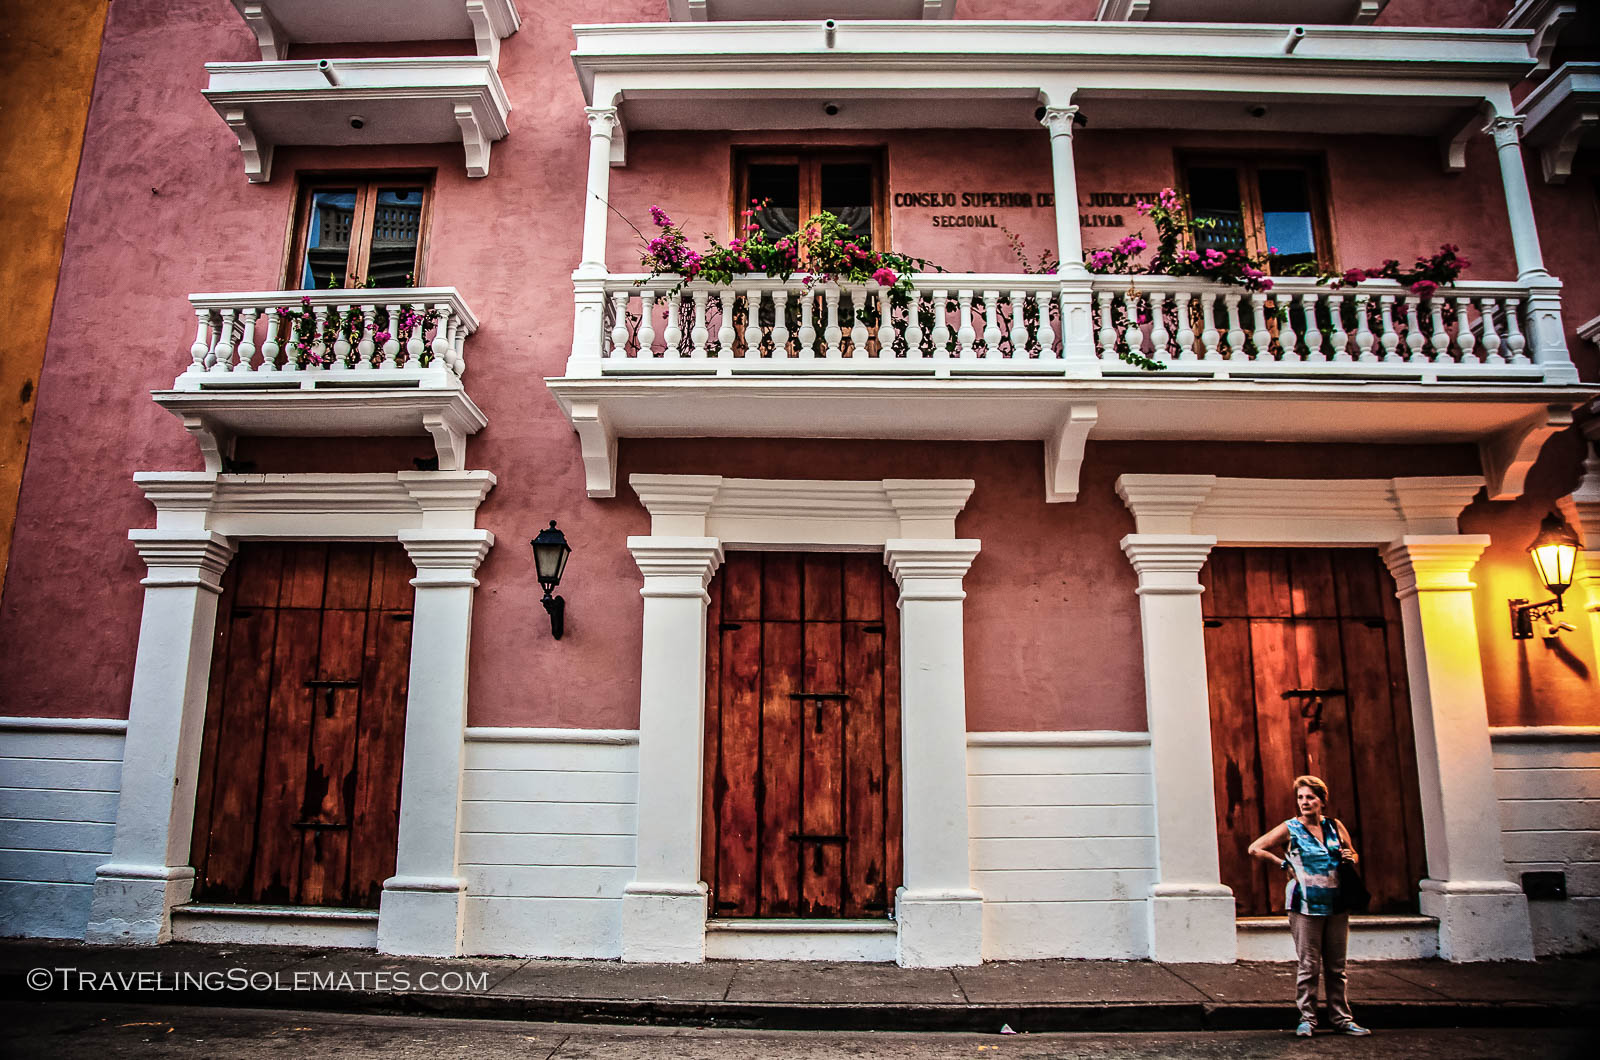 A colorful facade in Old Cartagena, Colombia